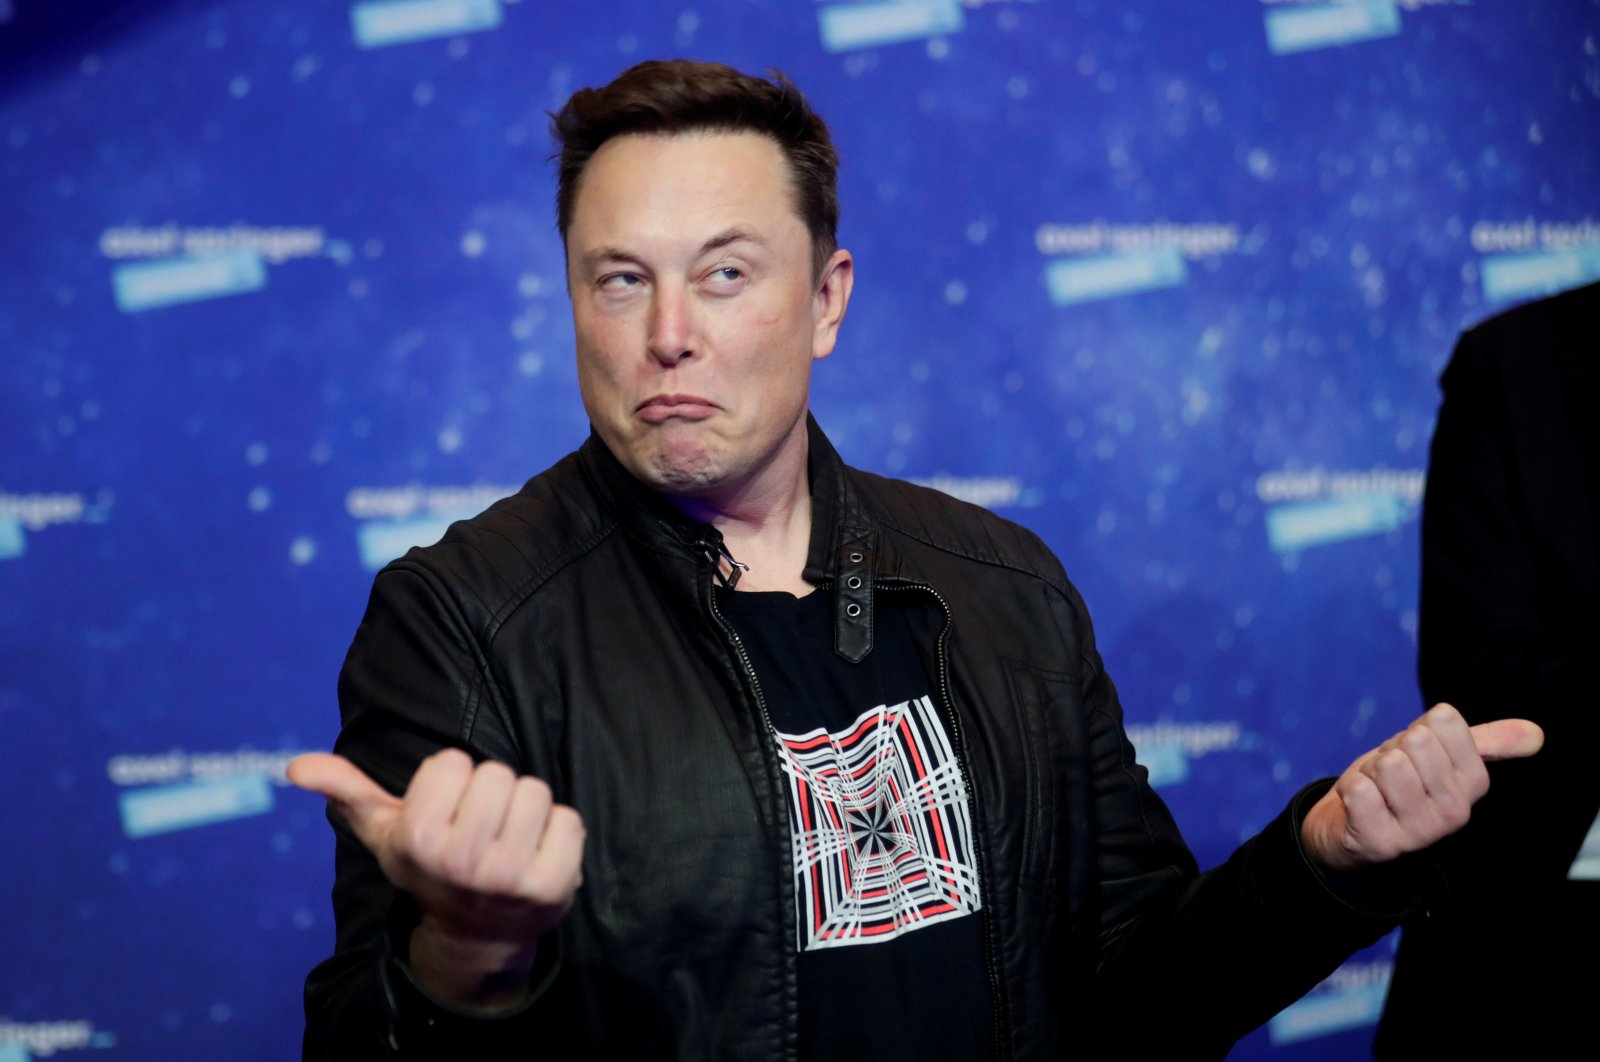 Tesla and SpaceX founder Elon Musk grimaces after arriving on the red carpet for the Axel Springer award, in Berlin, Germany, Dec. 1, 2020. (Reuters Photo)